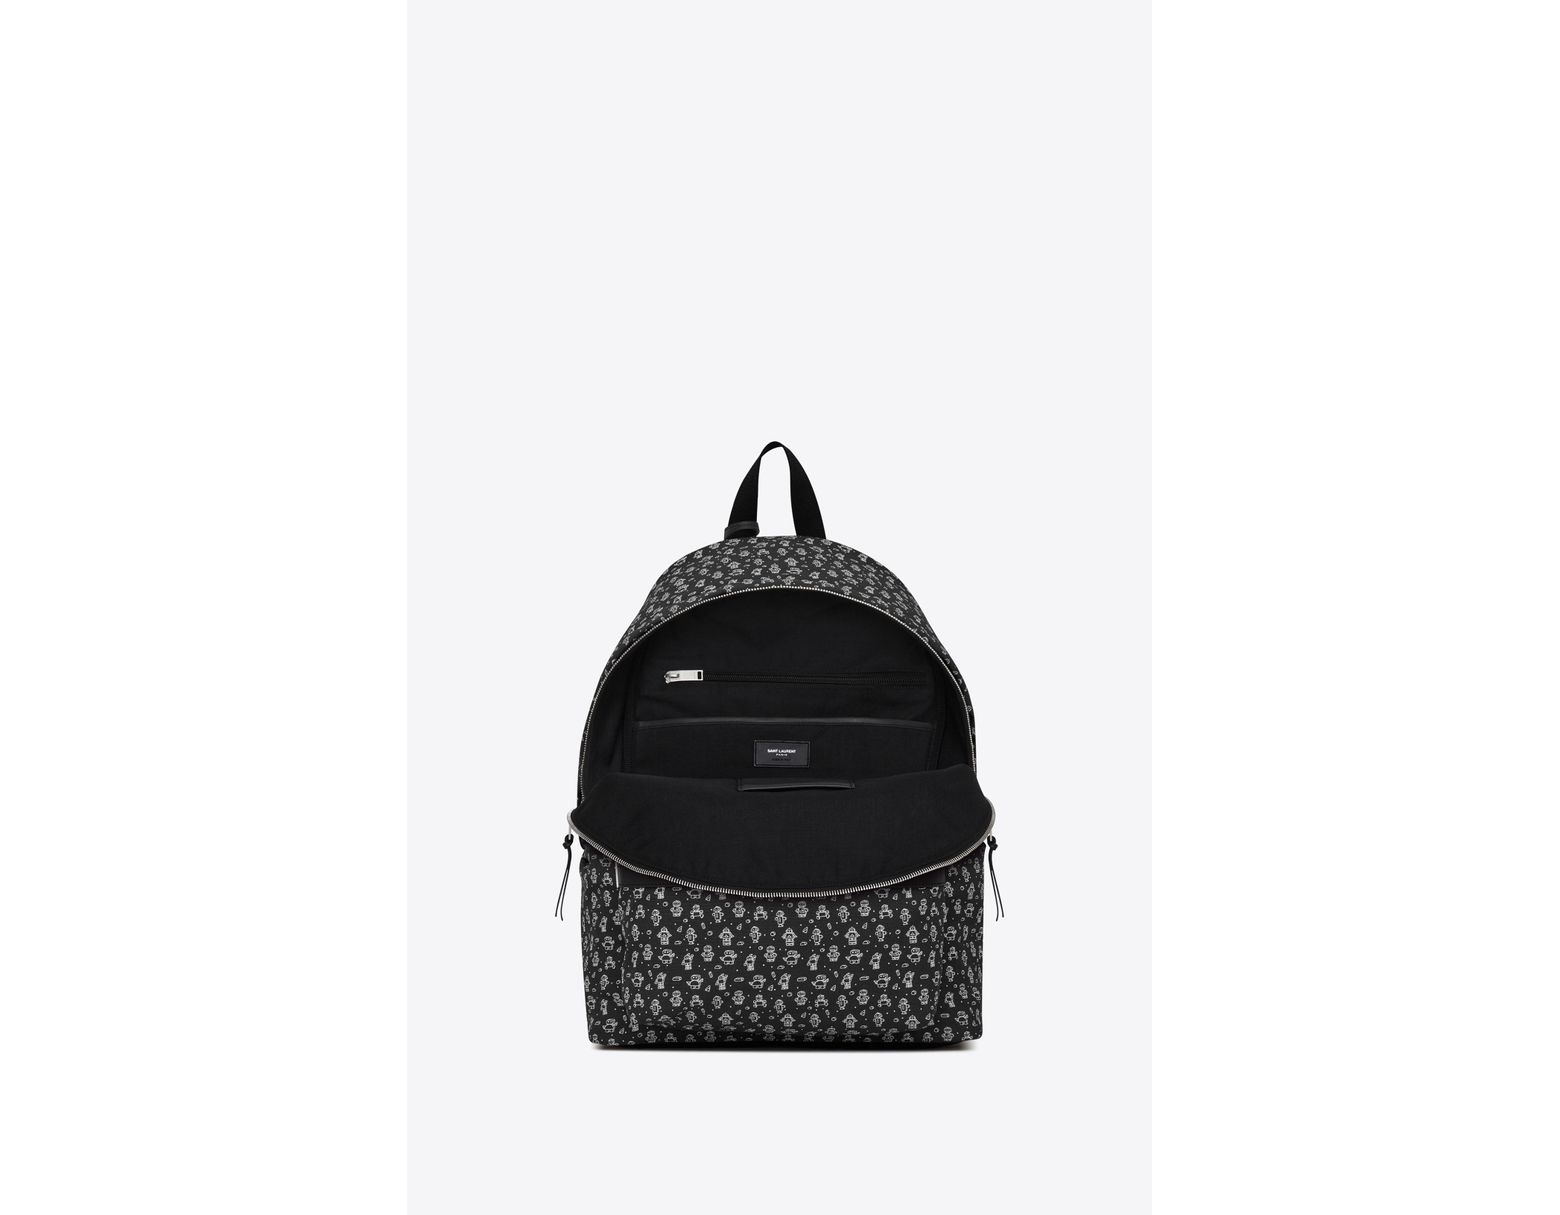 81a7639928 Saint Laurent City Canvas Backpack With Robot Print in Black for Men ...